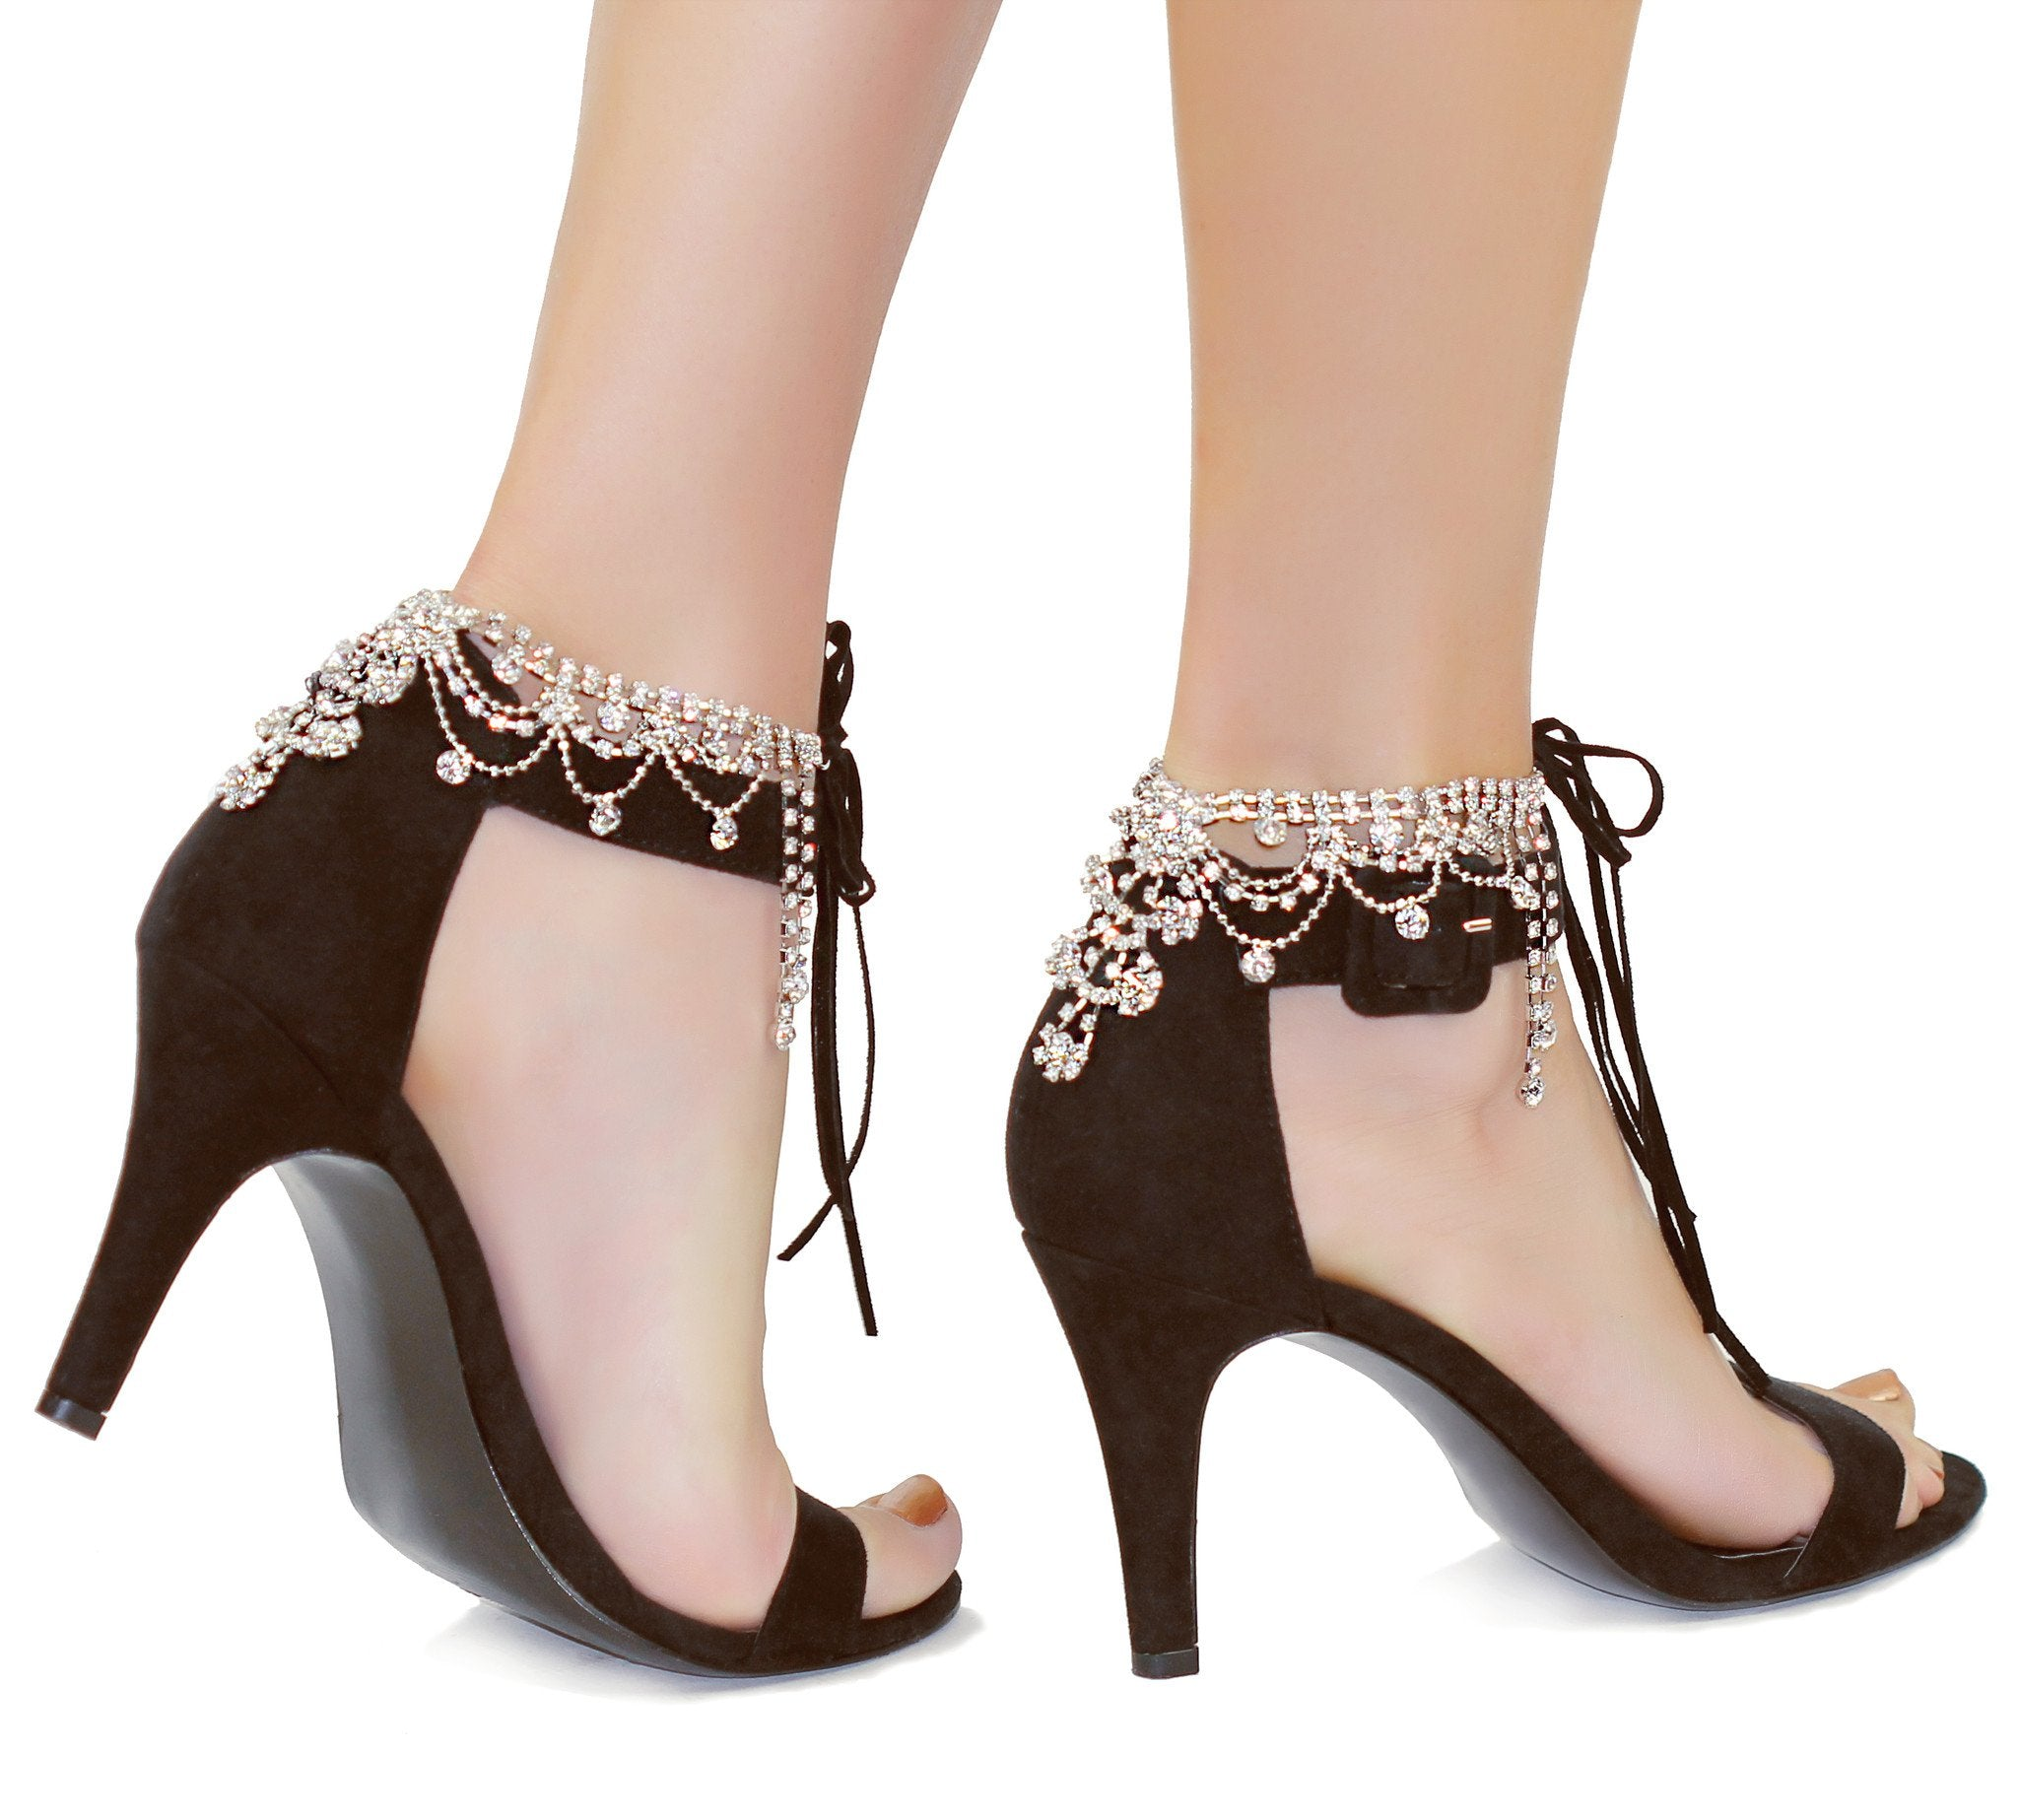 Draping Crystals Anklet - Amethyst Shoes